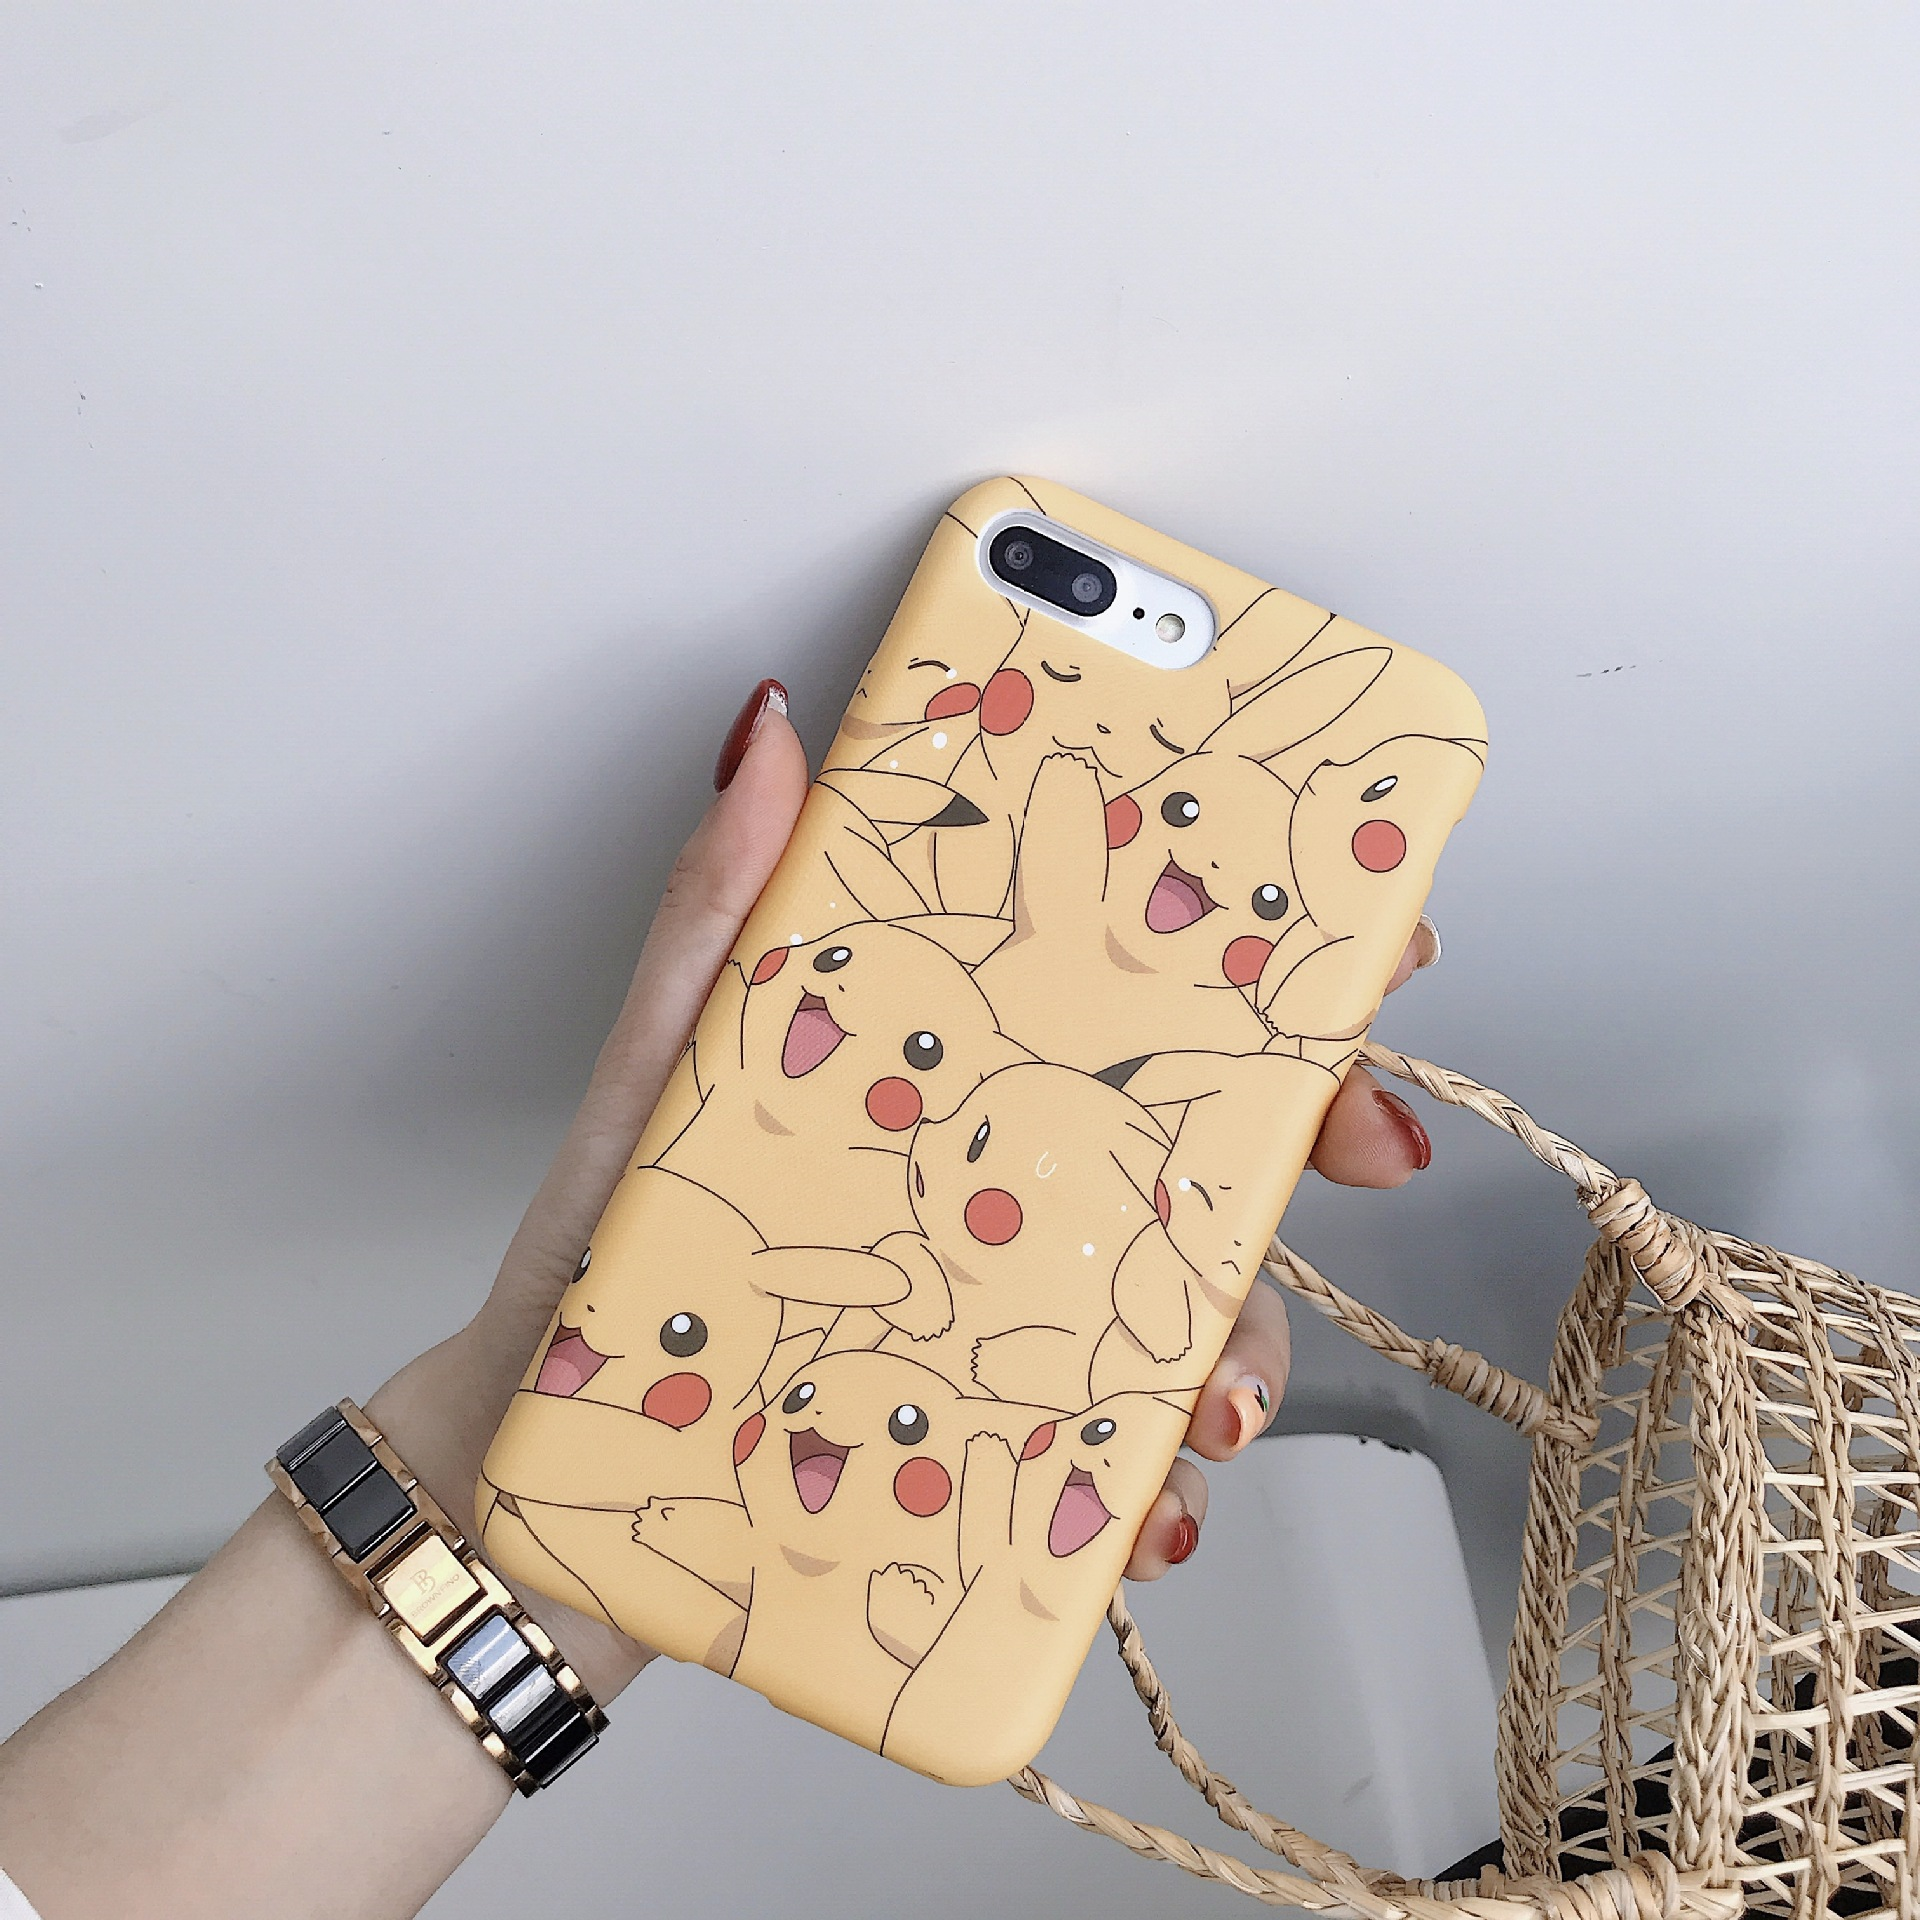 cartoon-pocket-monsters-font-b-pokemons-b-font-pikachue-phone-case-for-iphone-7-7-puls-6-6s-7-8-puls-x-xsmax-xr-xs-cases-soft-silicone-cover